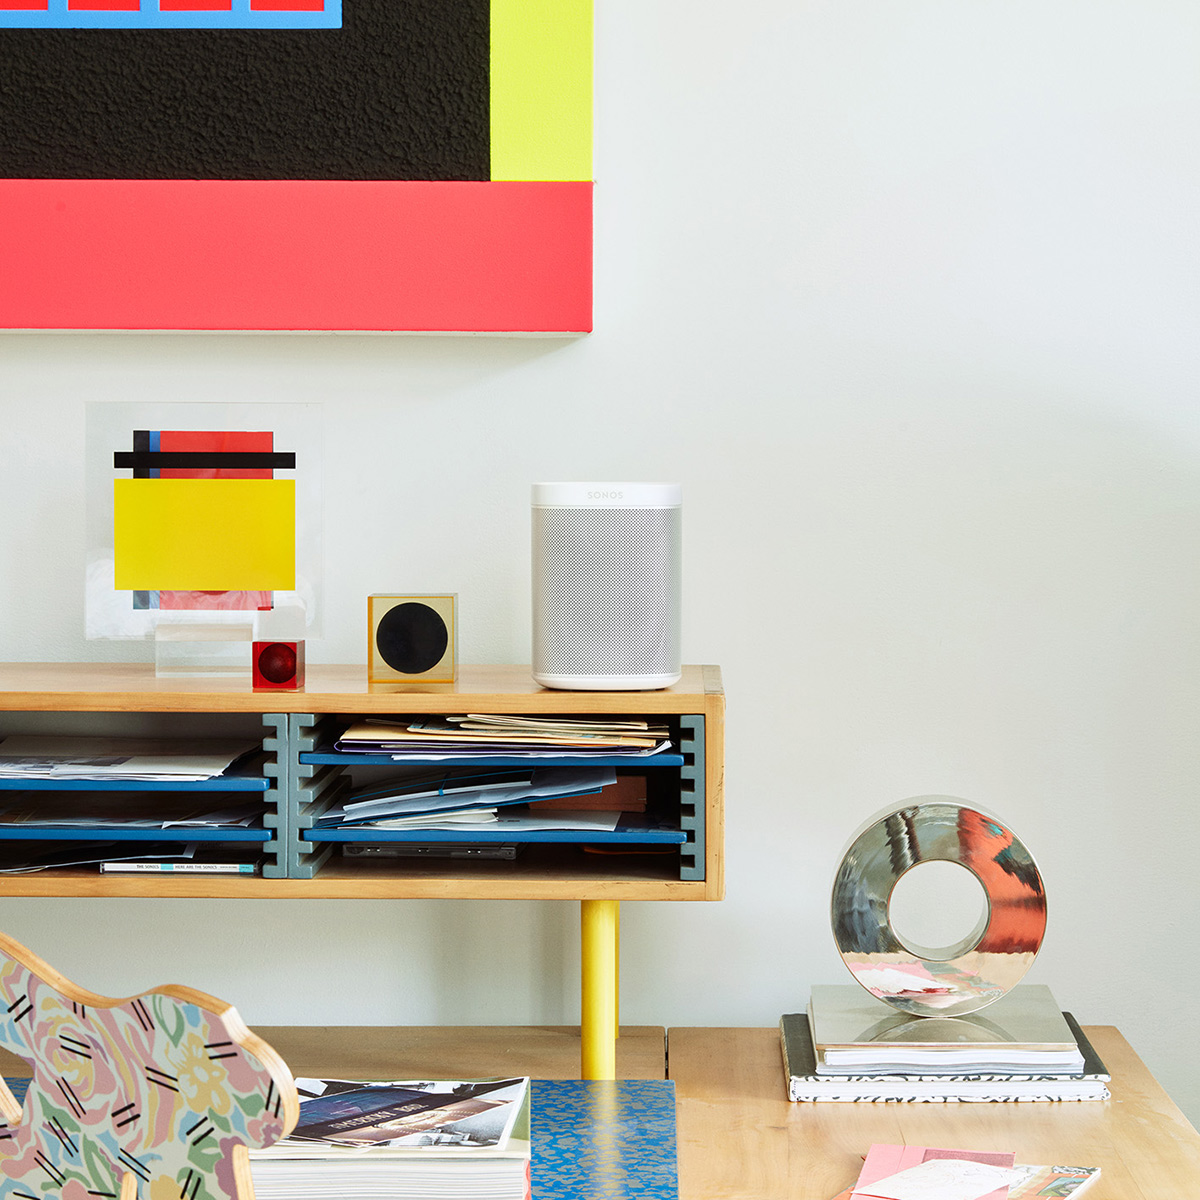 Sonos-Two-Room-Set-with-Sonos-One-Gen-2-Smart-Speaker-with-Alexa-Voice-Control thumbnail 20